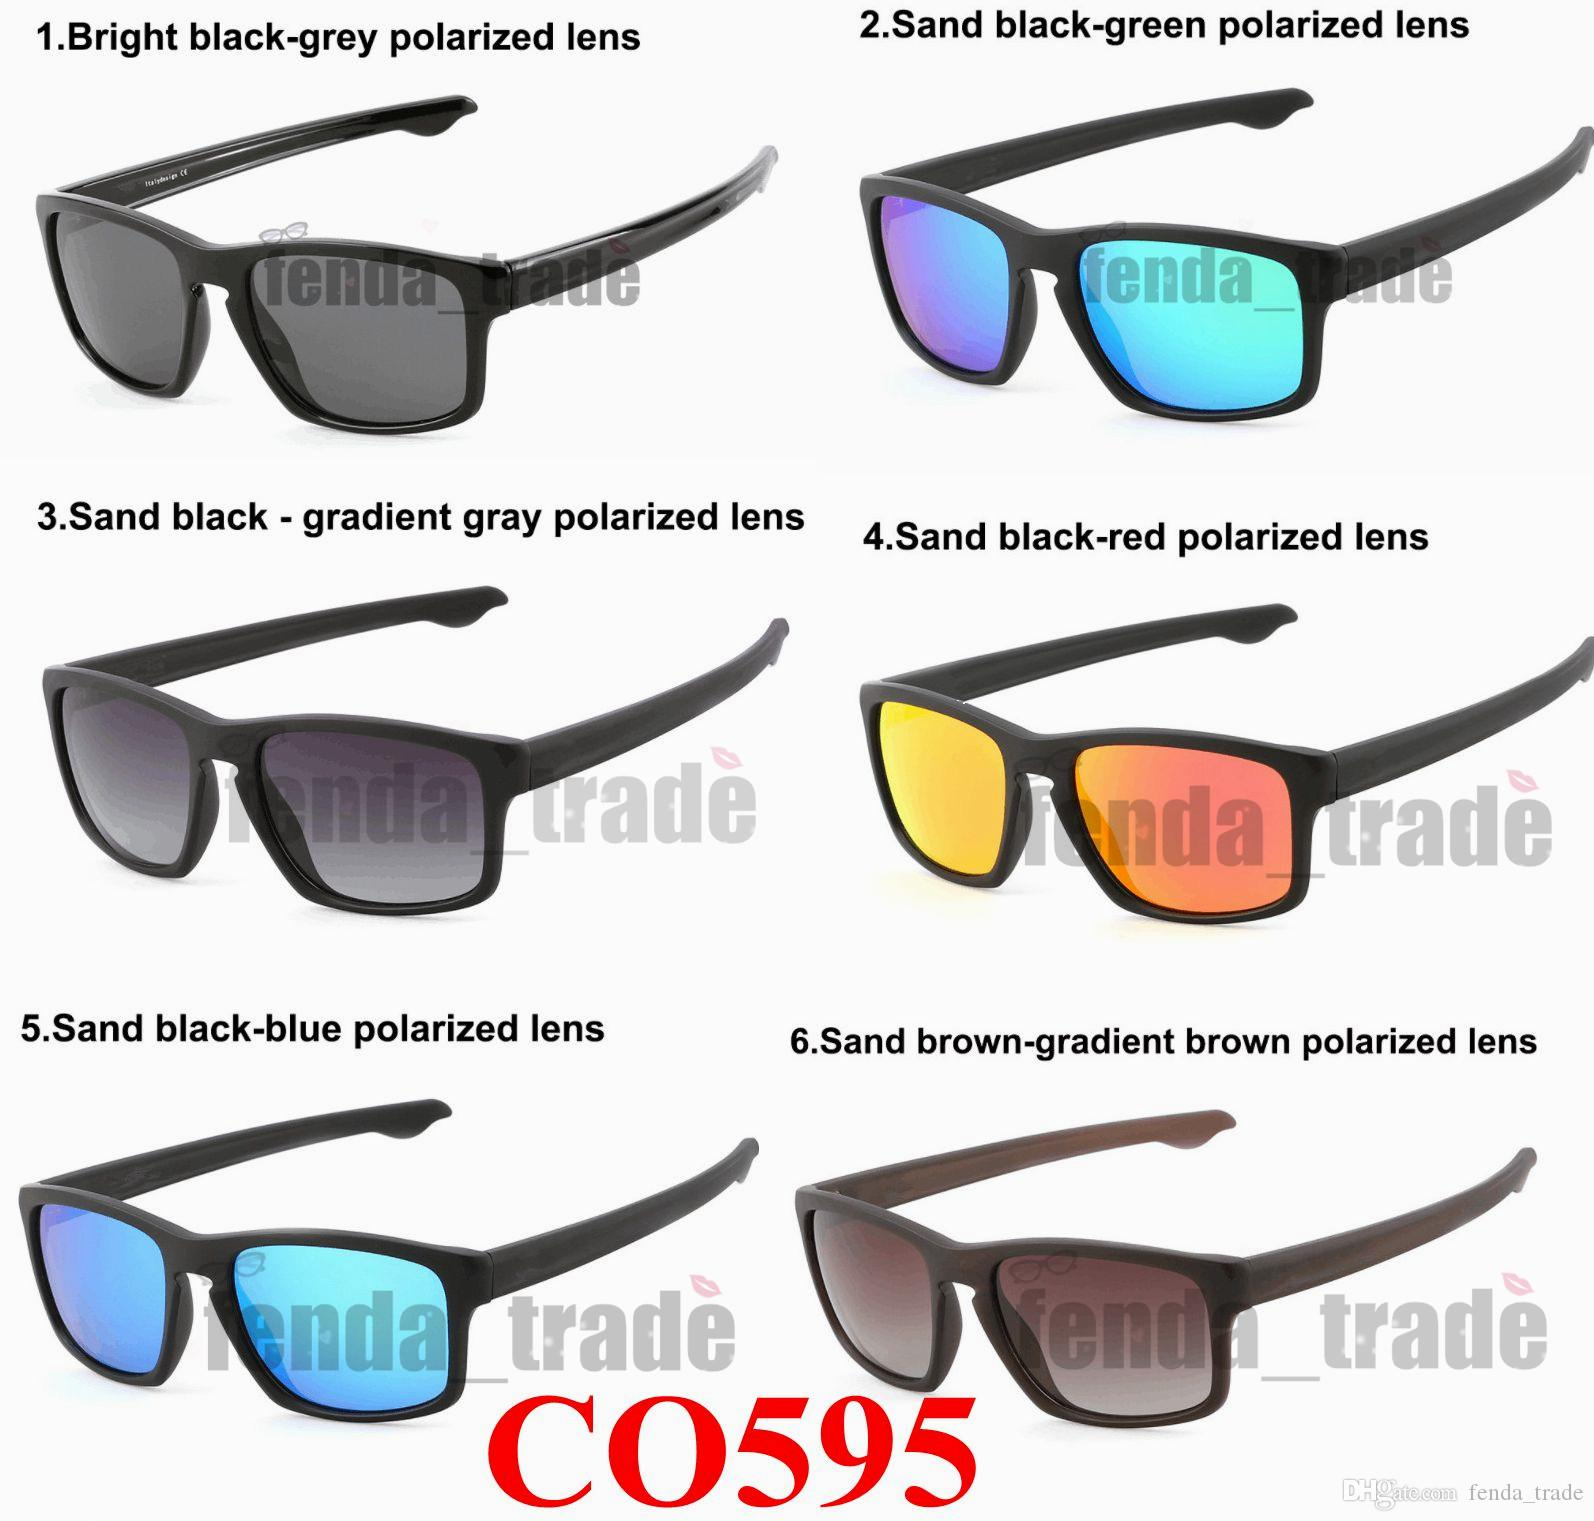 cdc9337c4b Factory HOT TR90 Polarized Man Sunglasse TAC LENS Driving Sun Glasses Woman  Surfing Sunglasses Women HOT Sunglasses 2019 NEW Circle Sunglasses Glass  Frames ...